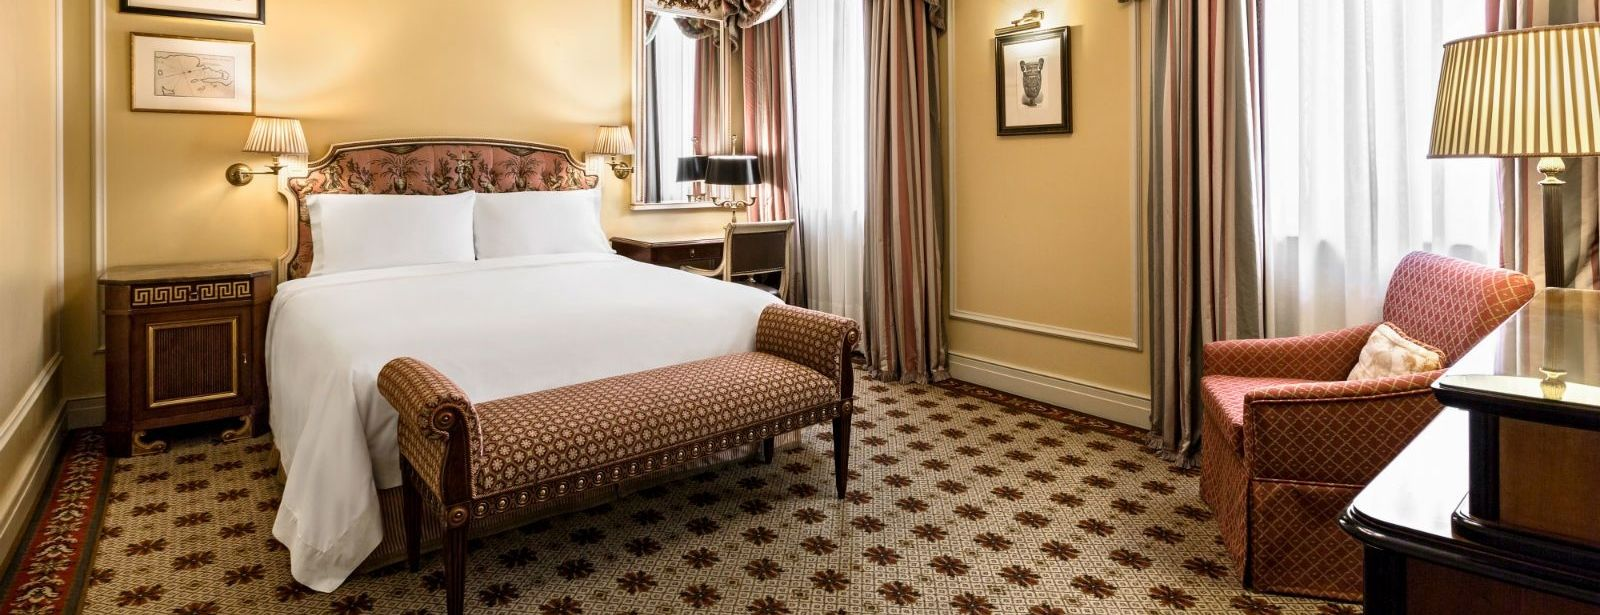 Deluxe Rooms at Hotel Grande Bretagne, a Luxury Collection Hotel Athens